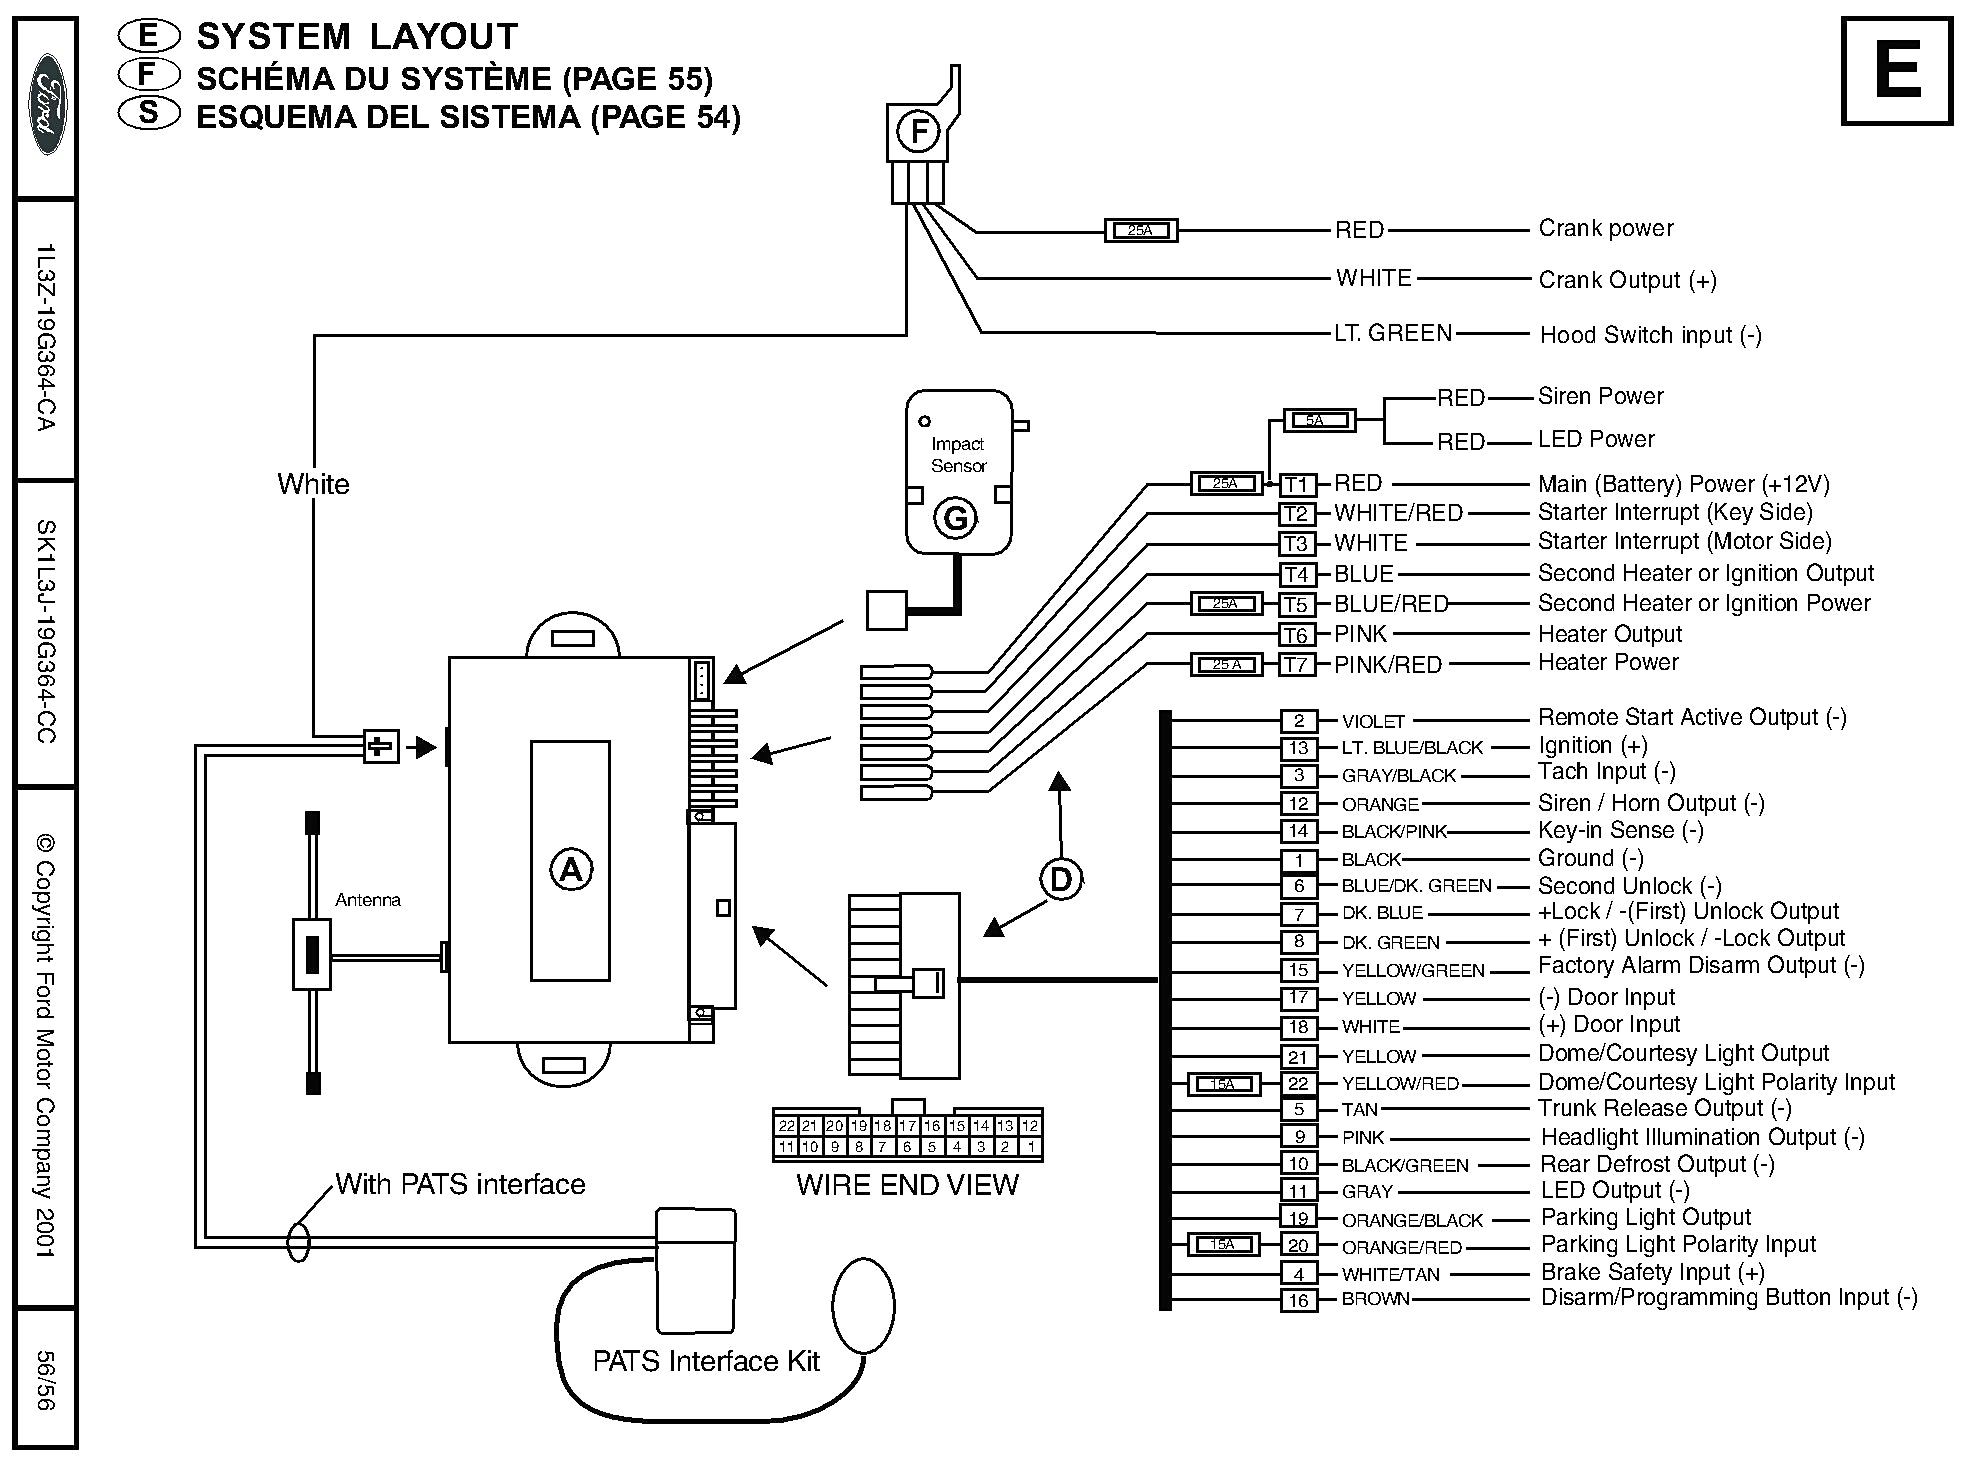 avital 4111 wiring diagram wiring diagrams best avital 4111 remote start wiring diagram basic wiring diagram library 2004 dodge truck wiring diagram avital